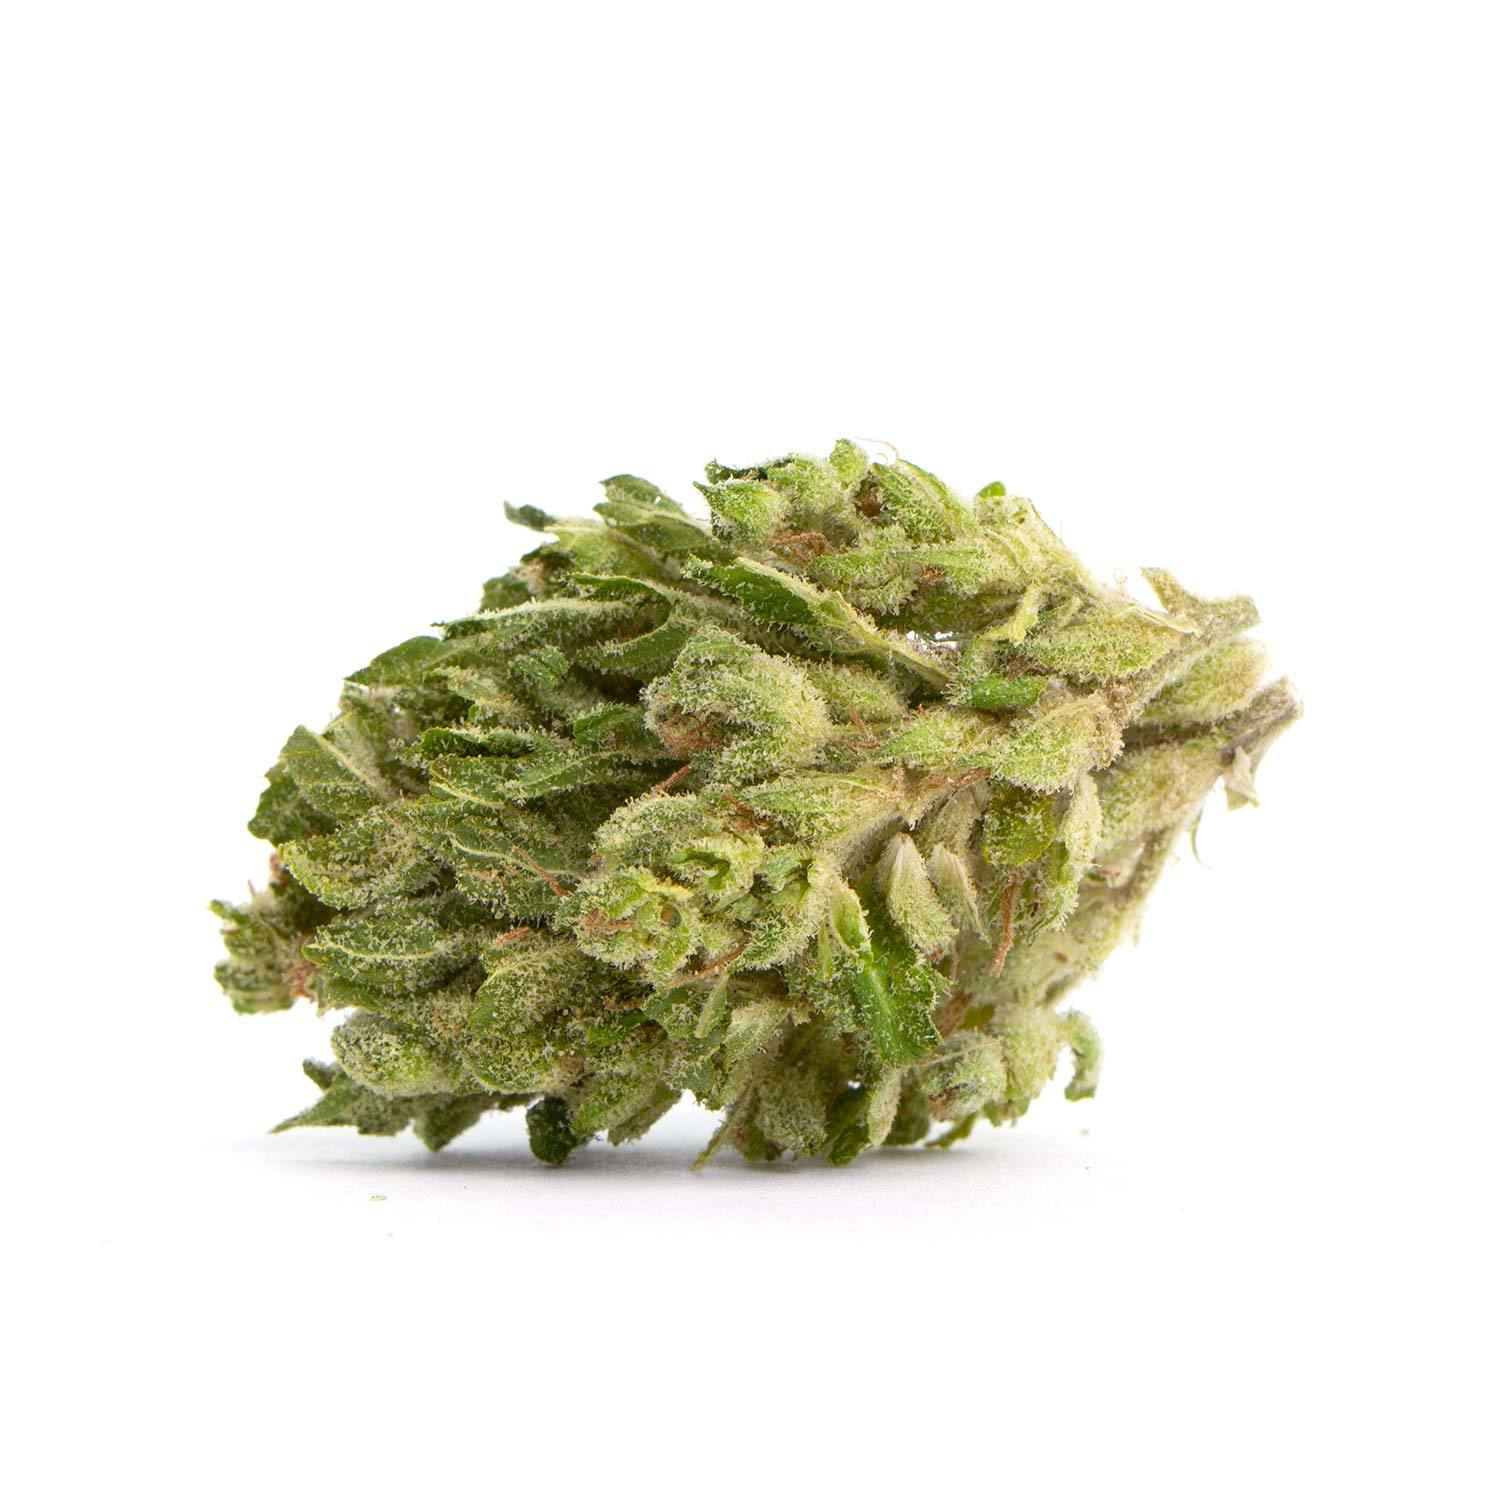 Adriatic Haze CBD Flower Tea (17% CBD)